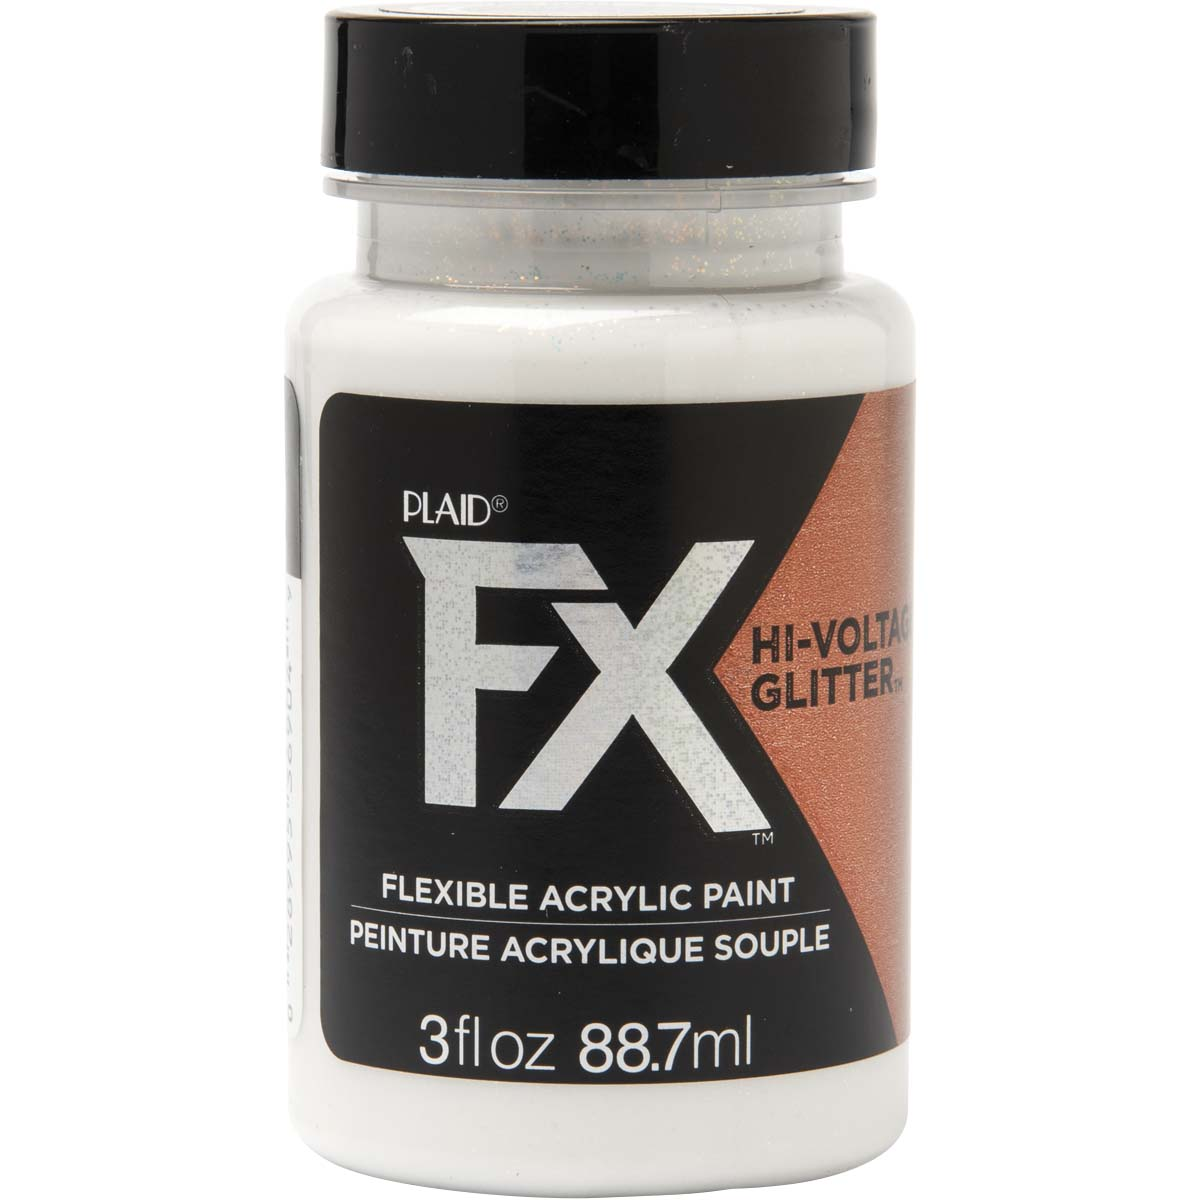 PlaidFX Hi-Voltage Glitter Flexible Acrylic Paint - Bronze Shift, 3 oz. - 36904